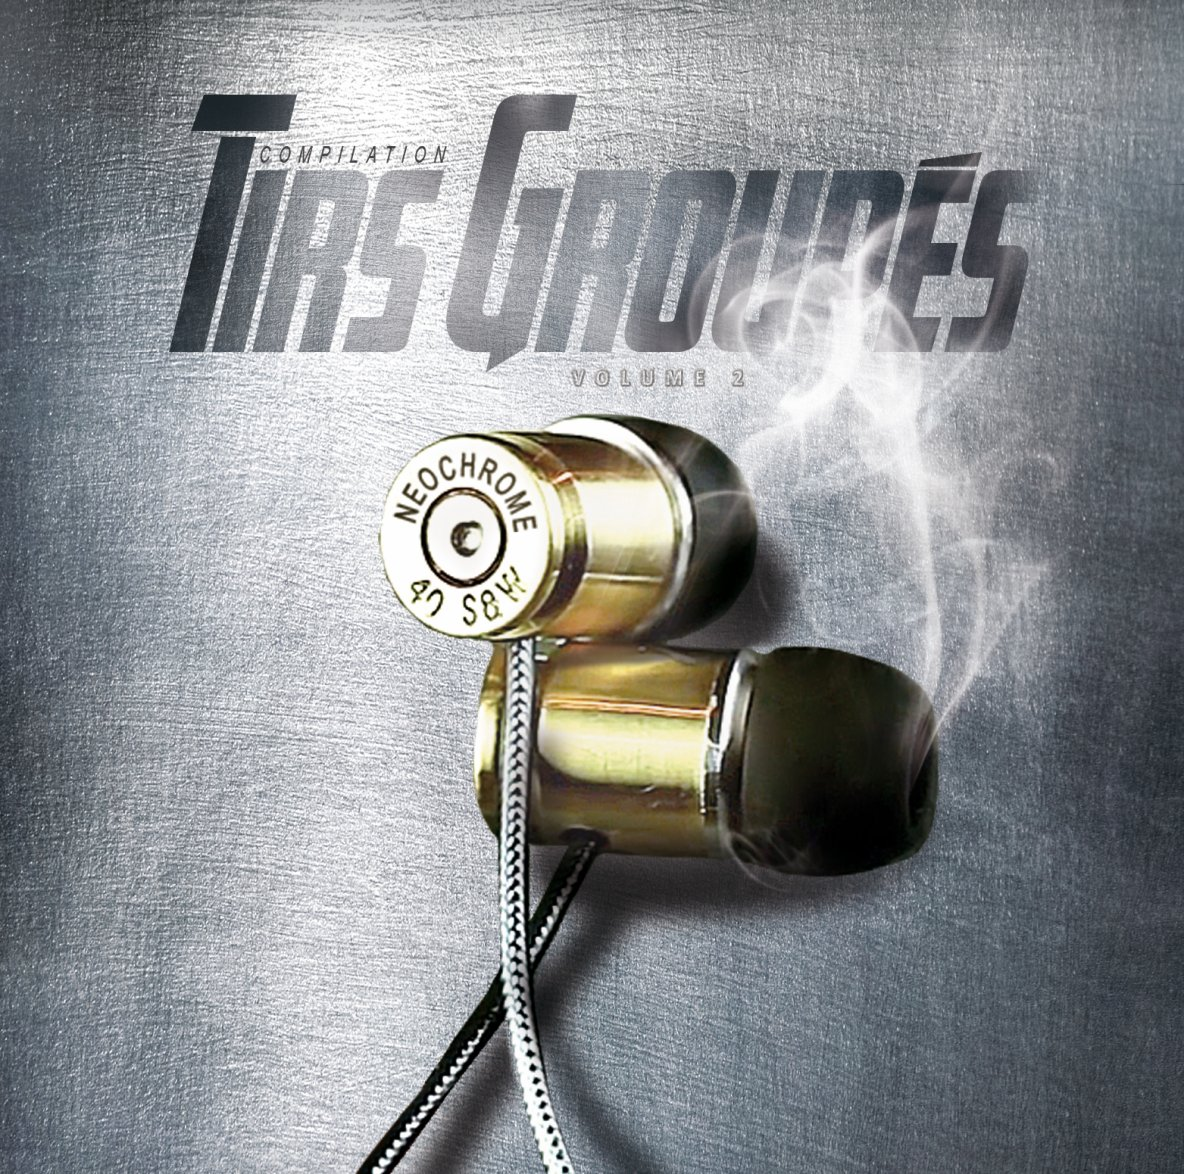 [COMPILATION] TIRS GROUPES Volume 2 | Disponible !